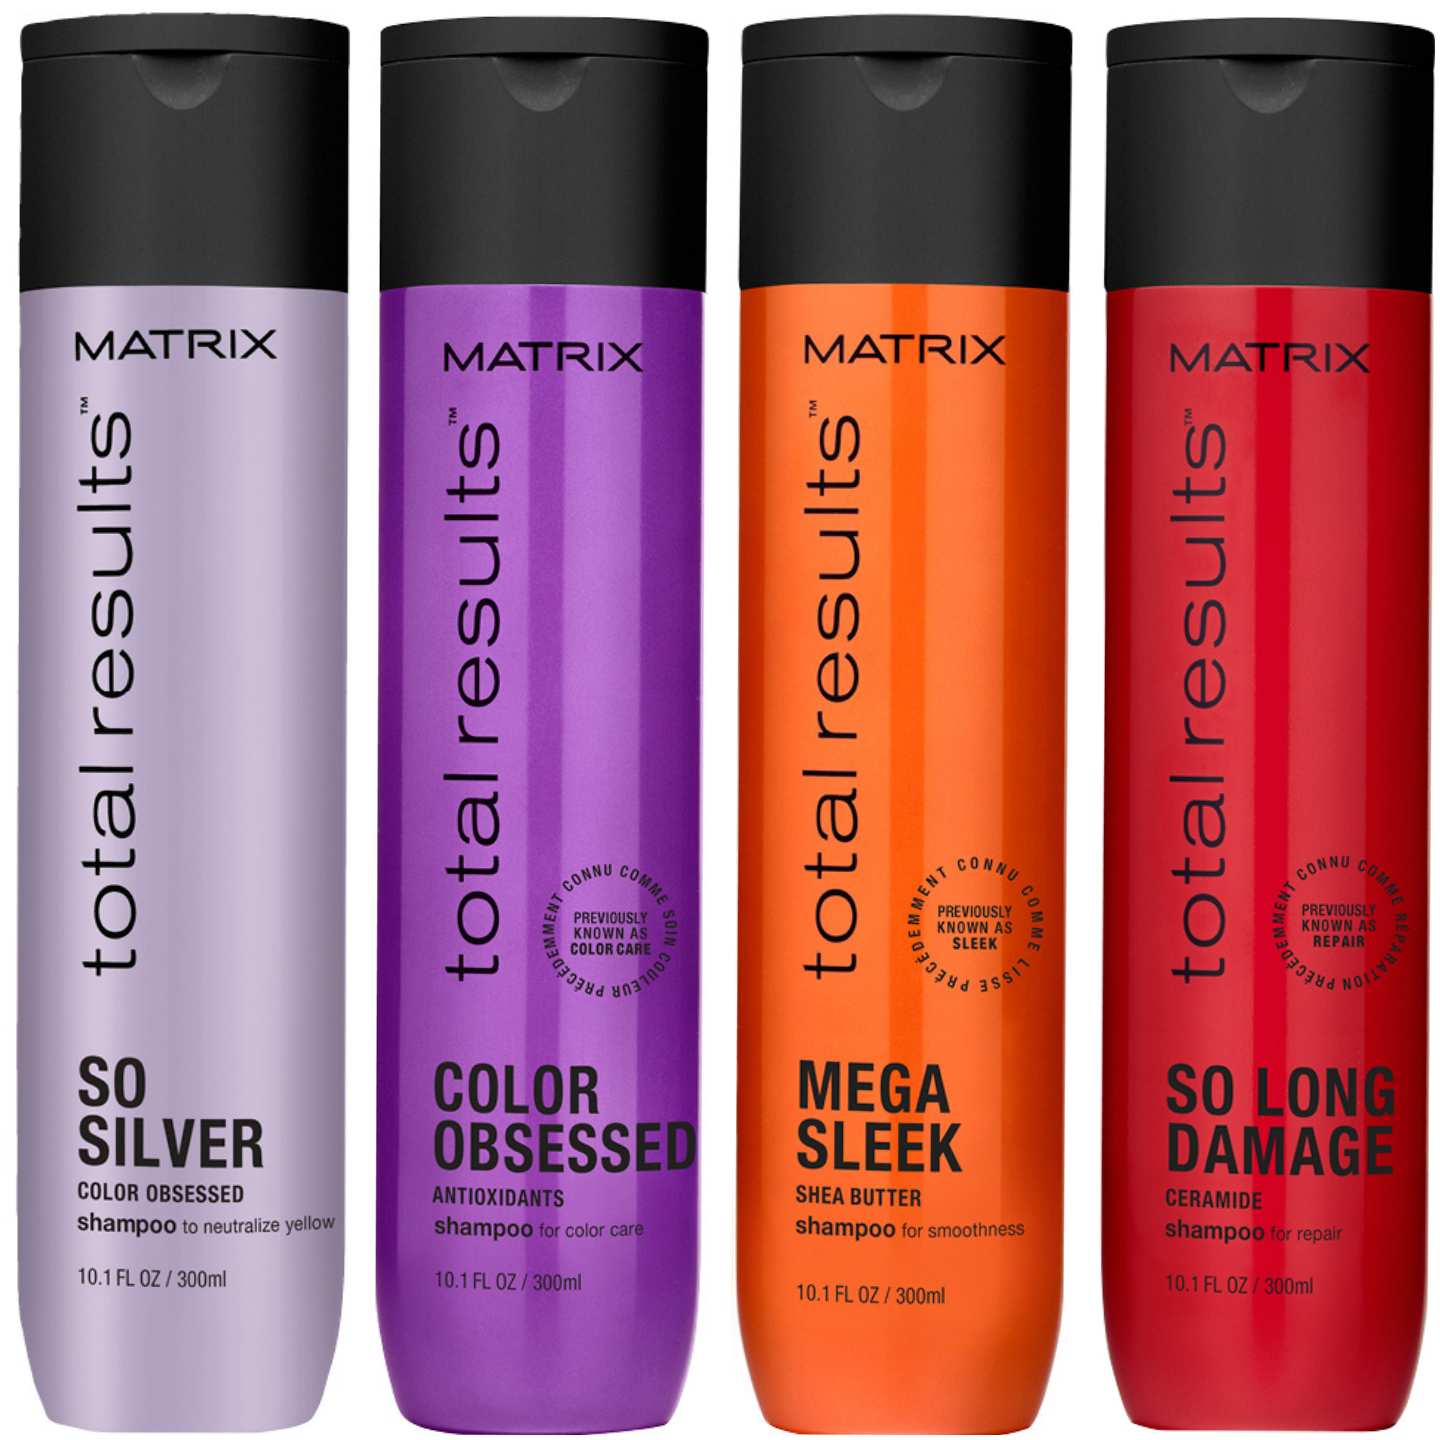 Matrix's Total Results Range of Products